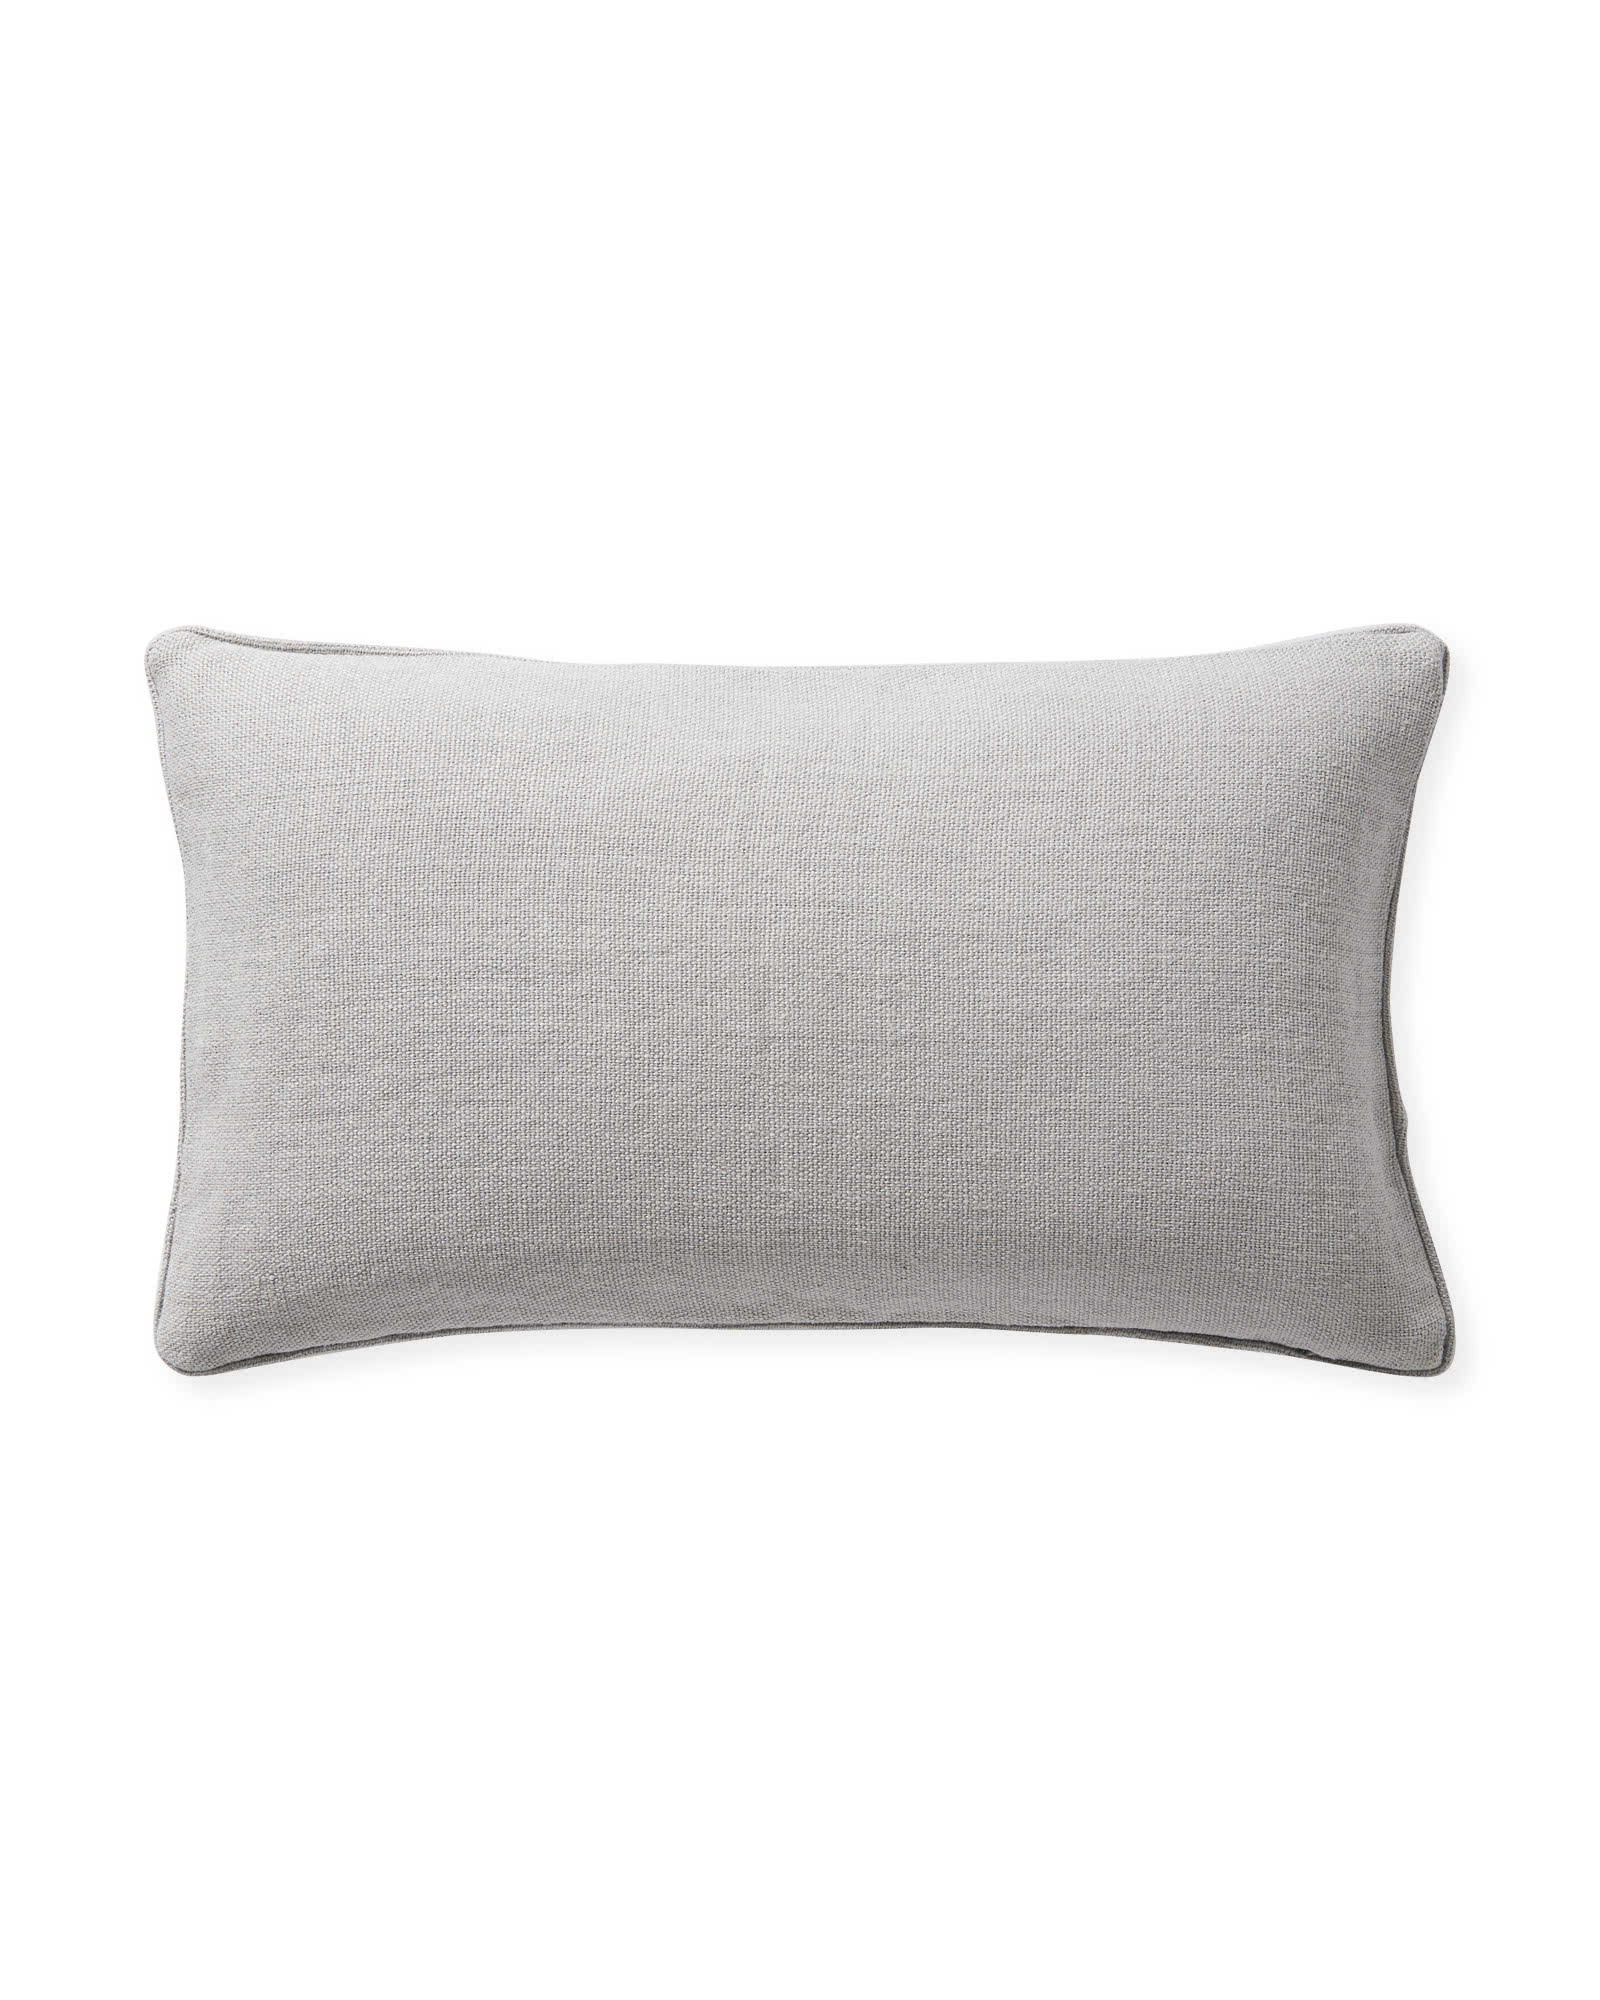 Jetty Pillow Cover, Smoke